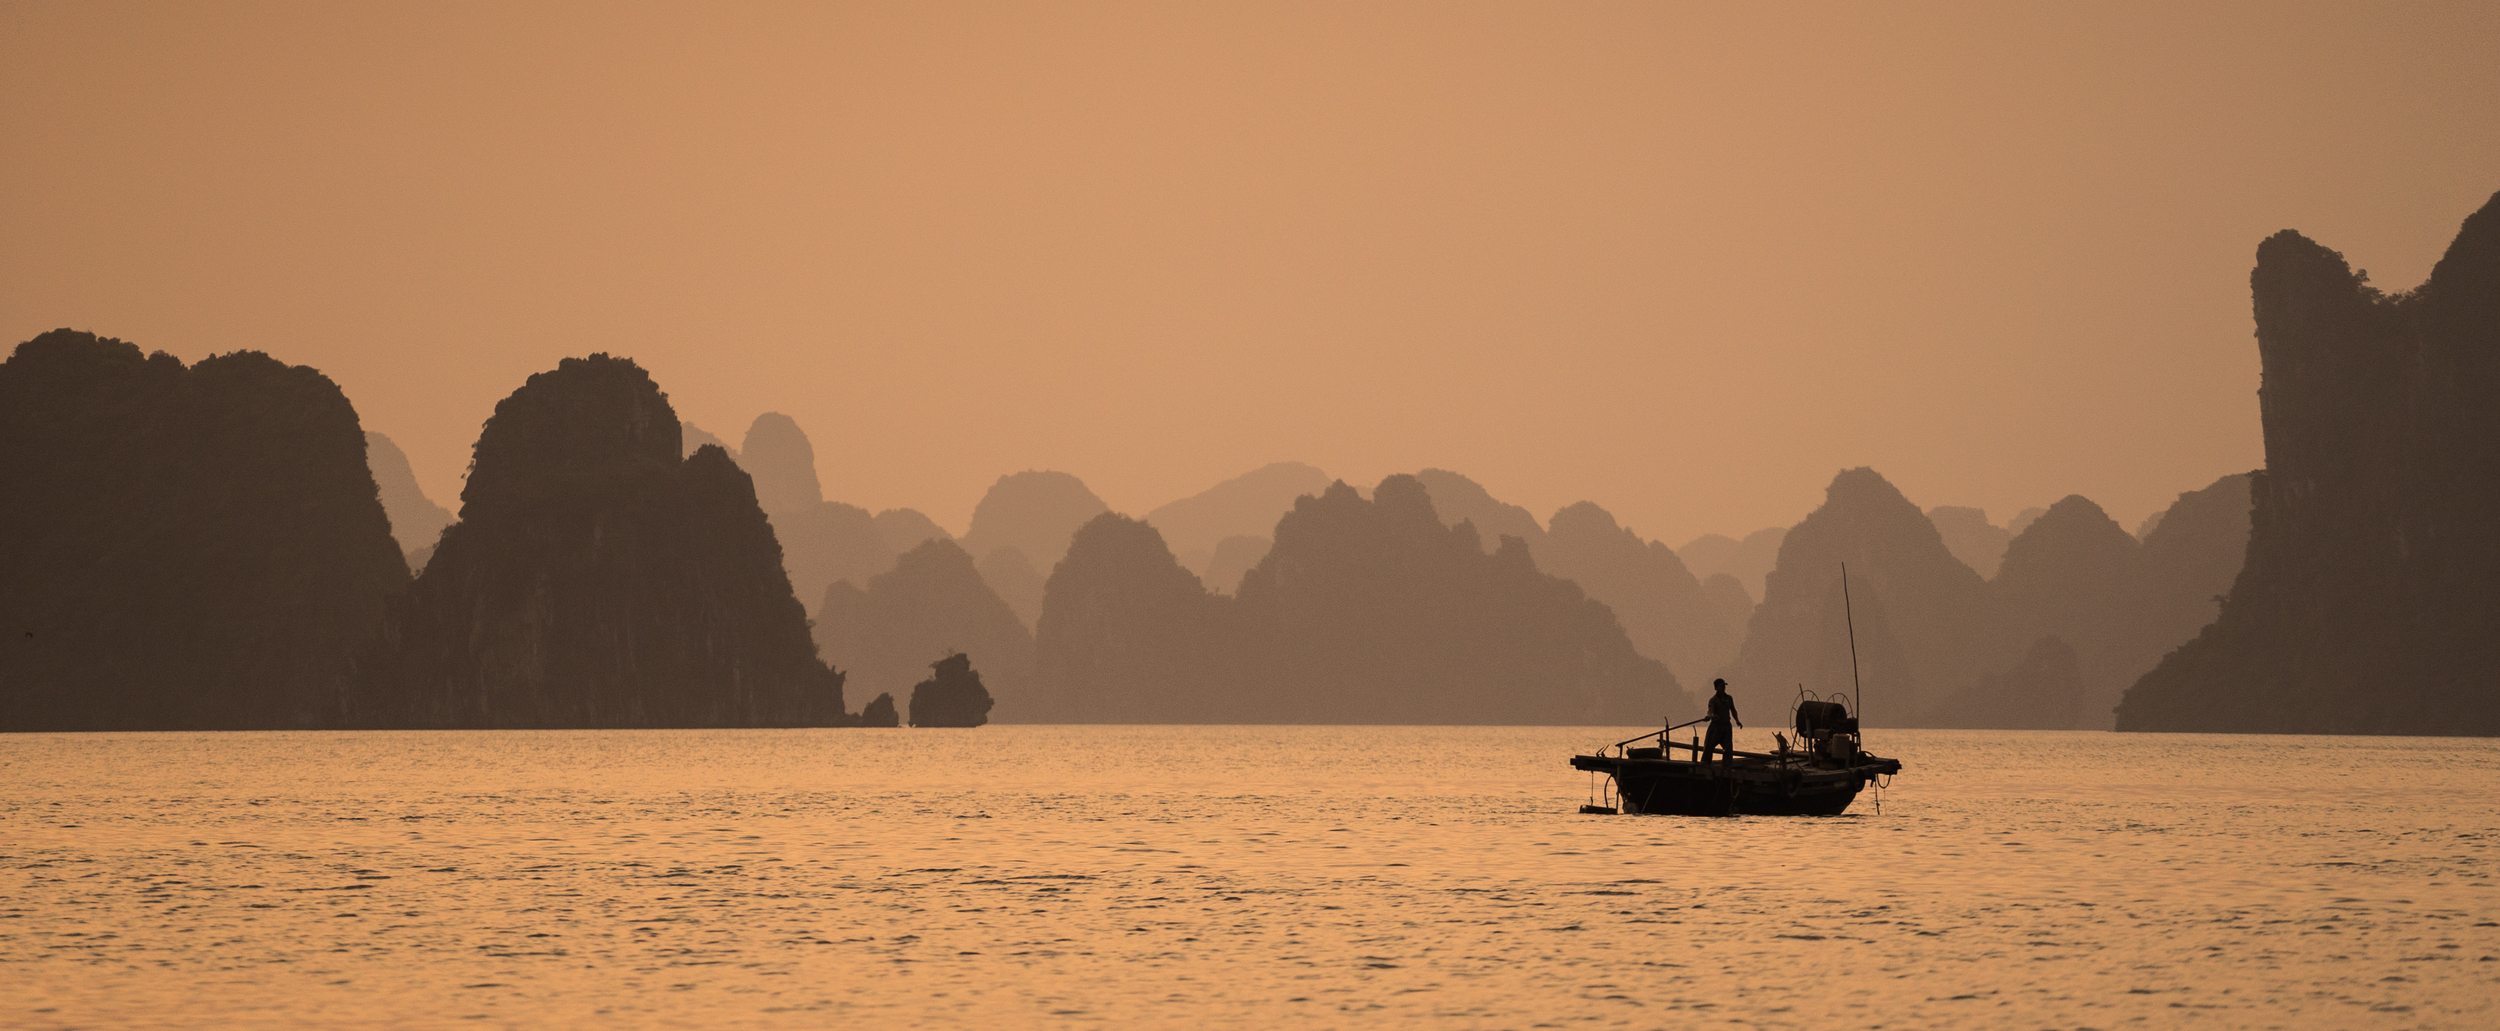 Fishing. Hạ Long Bay, Vietnam